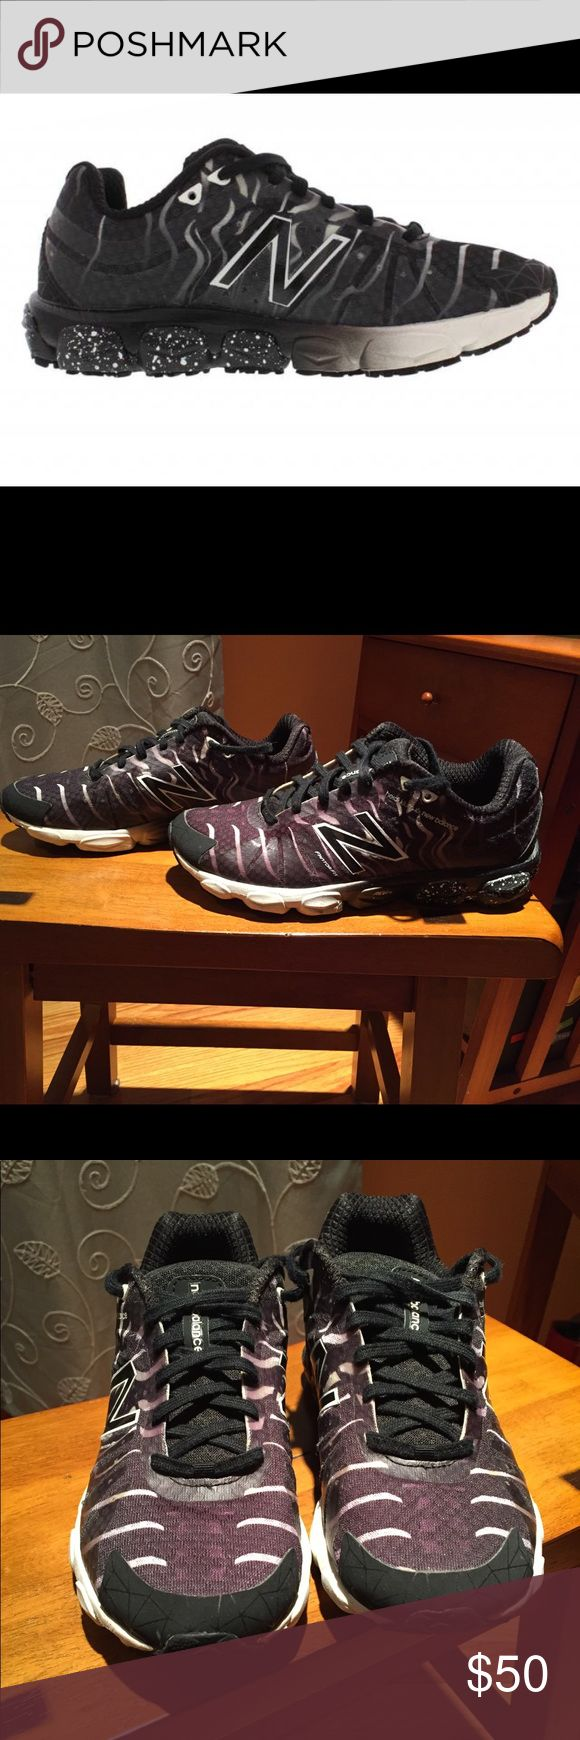 New Balance Heidi Klum 890V4 EUC New Balance Heidi Klum Run 890V4 running shoe is best for the neutral runner. These runners still have a lot of miles in them. There are no holes or marks on the sneakers. Cleaning out closet just have too many sneakers. new balance Shoes Sneakers